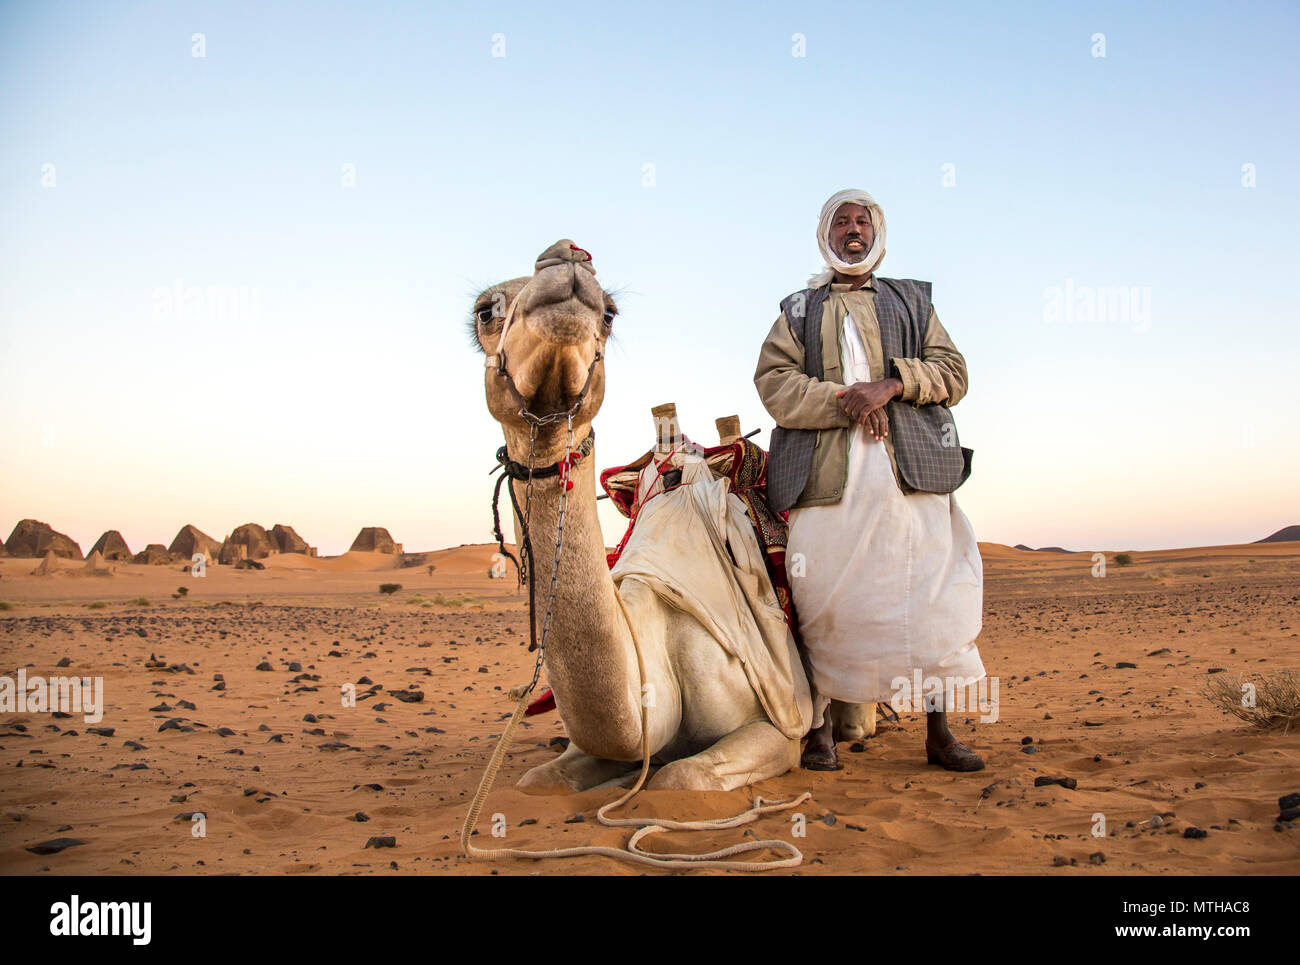 Meroe Pyramids, Sudan- 19th December, 2015: a man with his camel in a desert - Stock Image